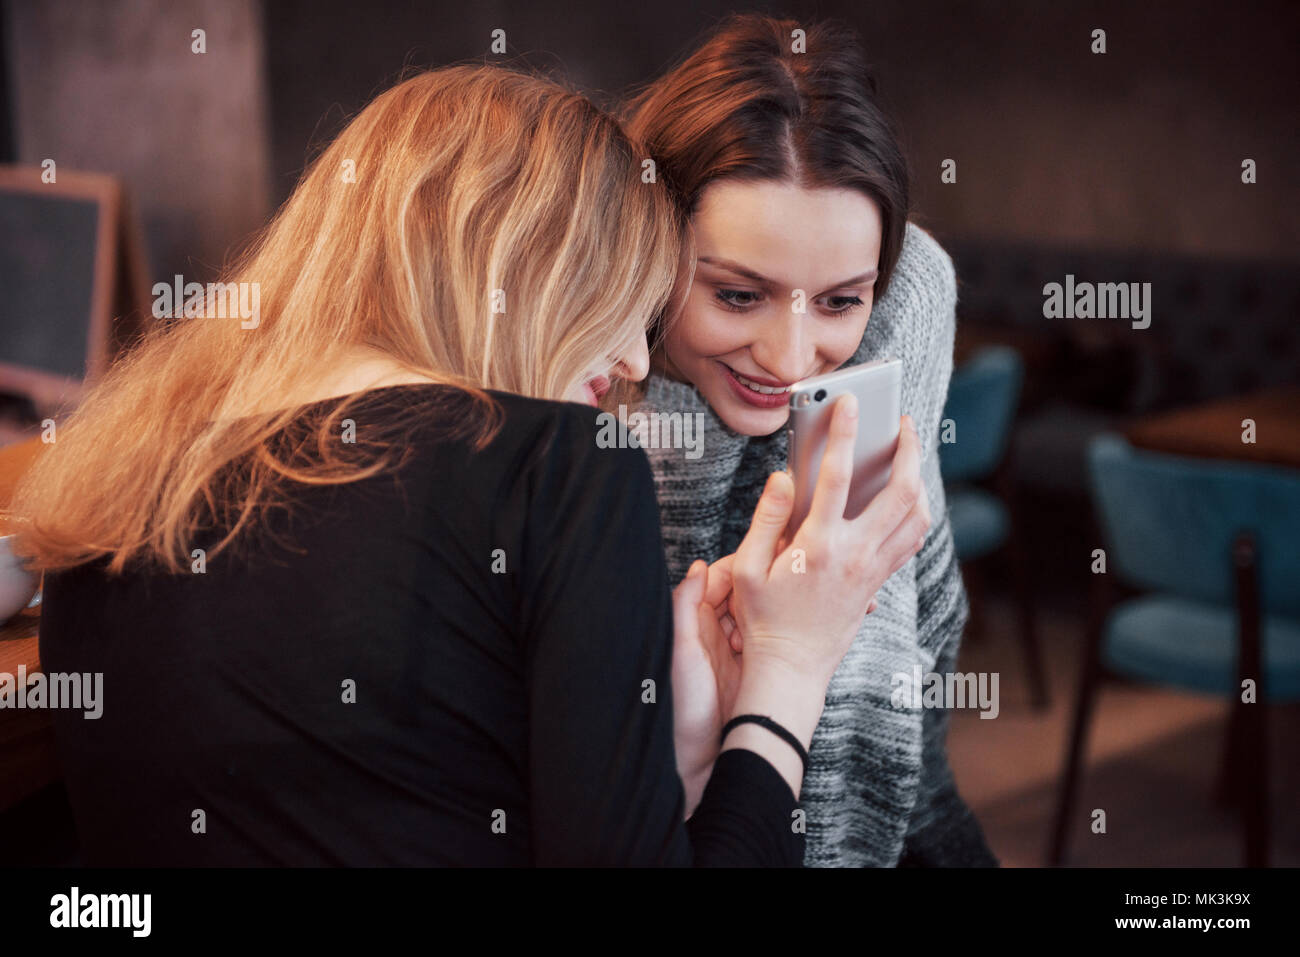 Two smiling friends reading funny online chat on modern telephone sitting with tasty coffee in restaurant.Hipster girls enjoying recreation time in cafe with hot beverages and messaging on cellular - Stock Image